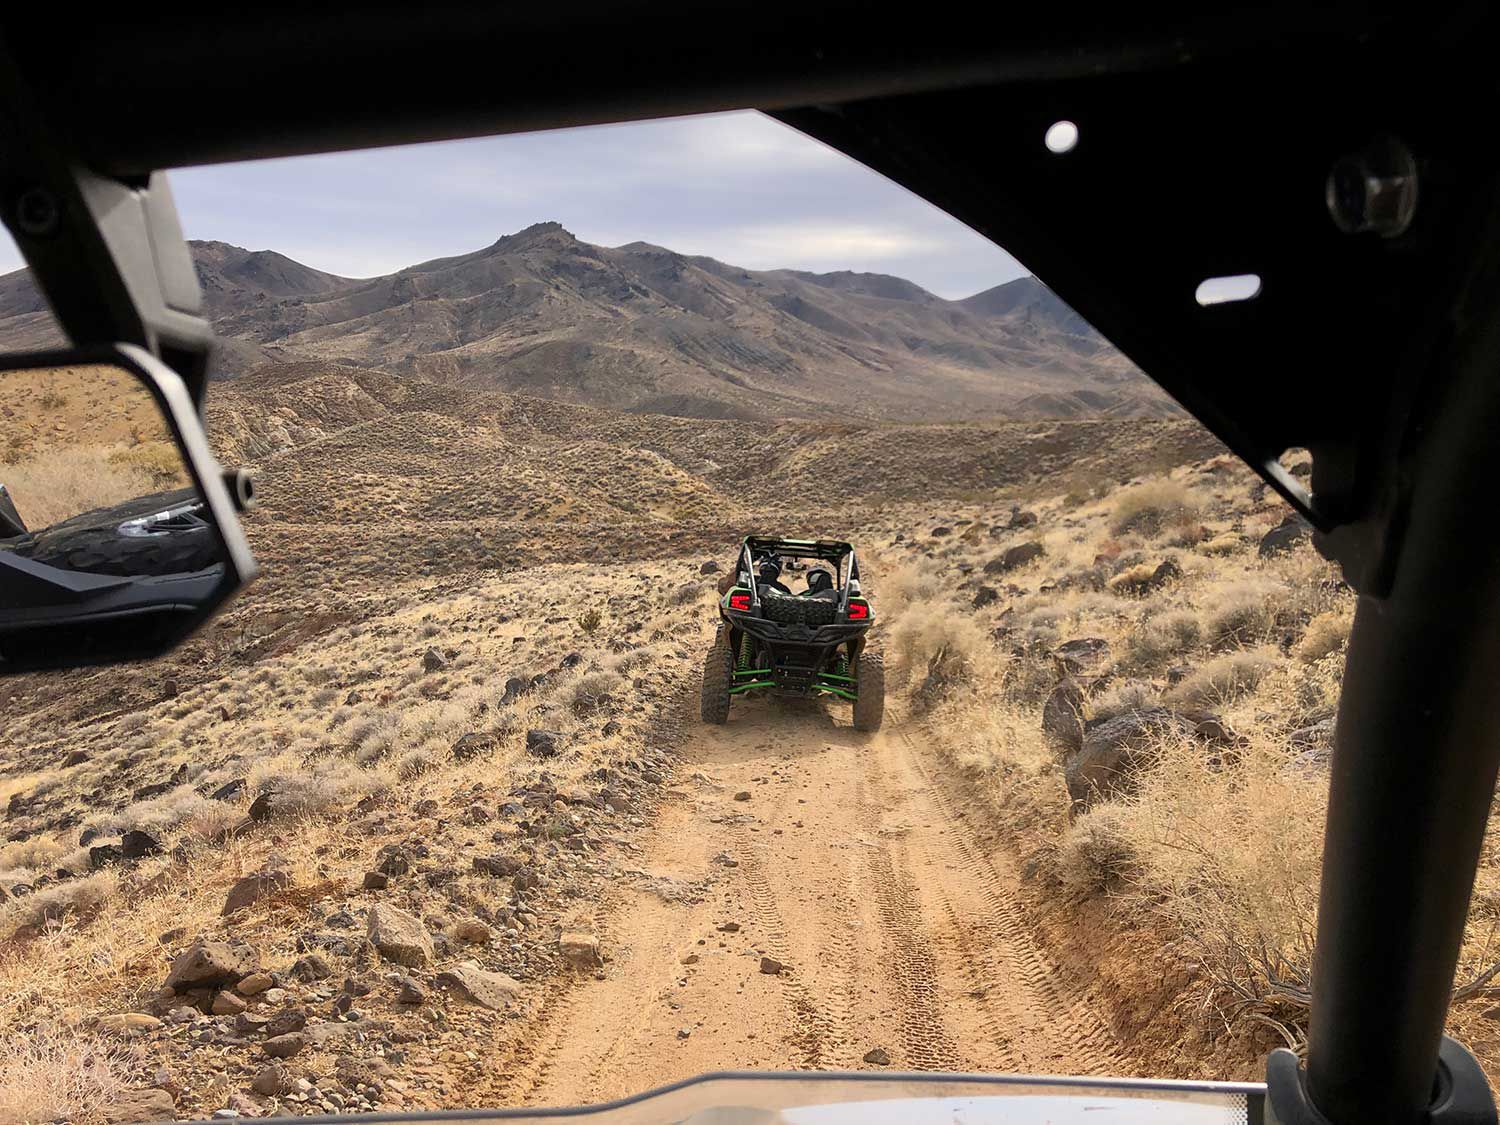 The extremely varied topography at Red Rock Canyon offered a great proving ground for the side-by-side, and included some fine scenery as well.